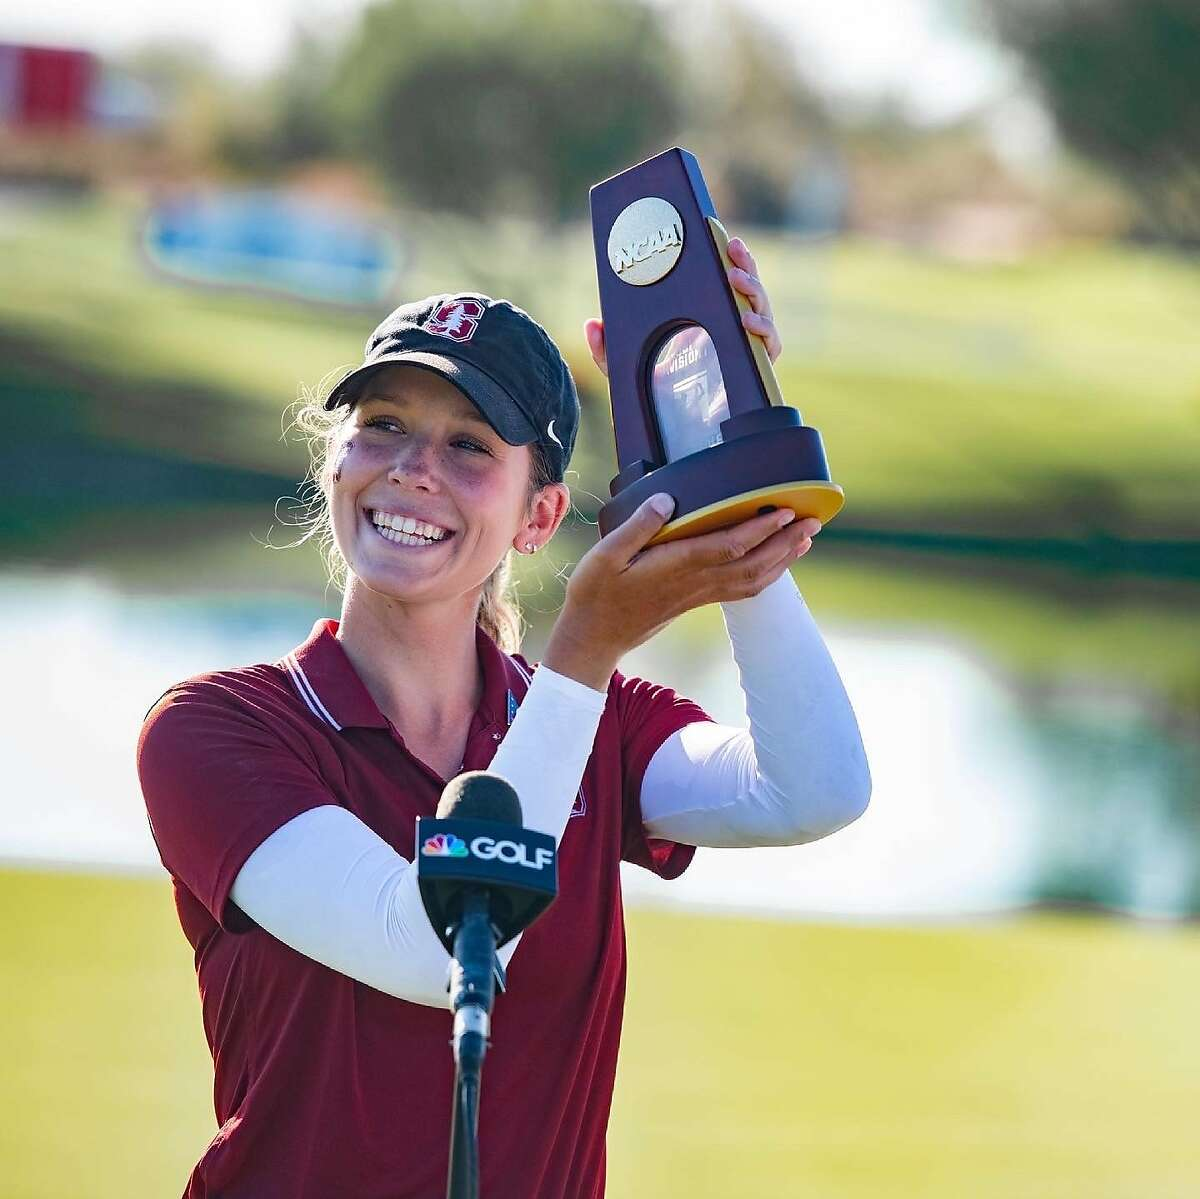 Freshman Rachel Heck became the first Stanford women's golfer to win the NCAA individual championship